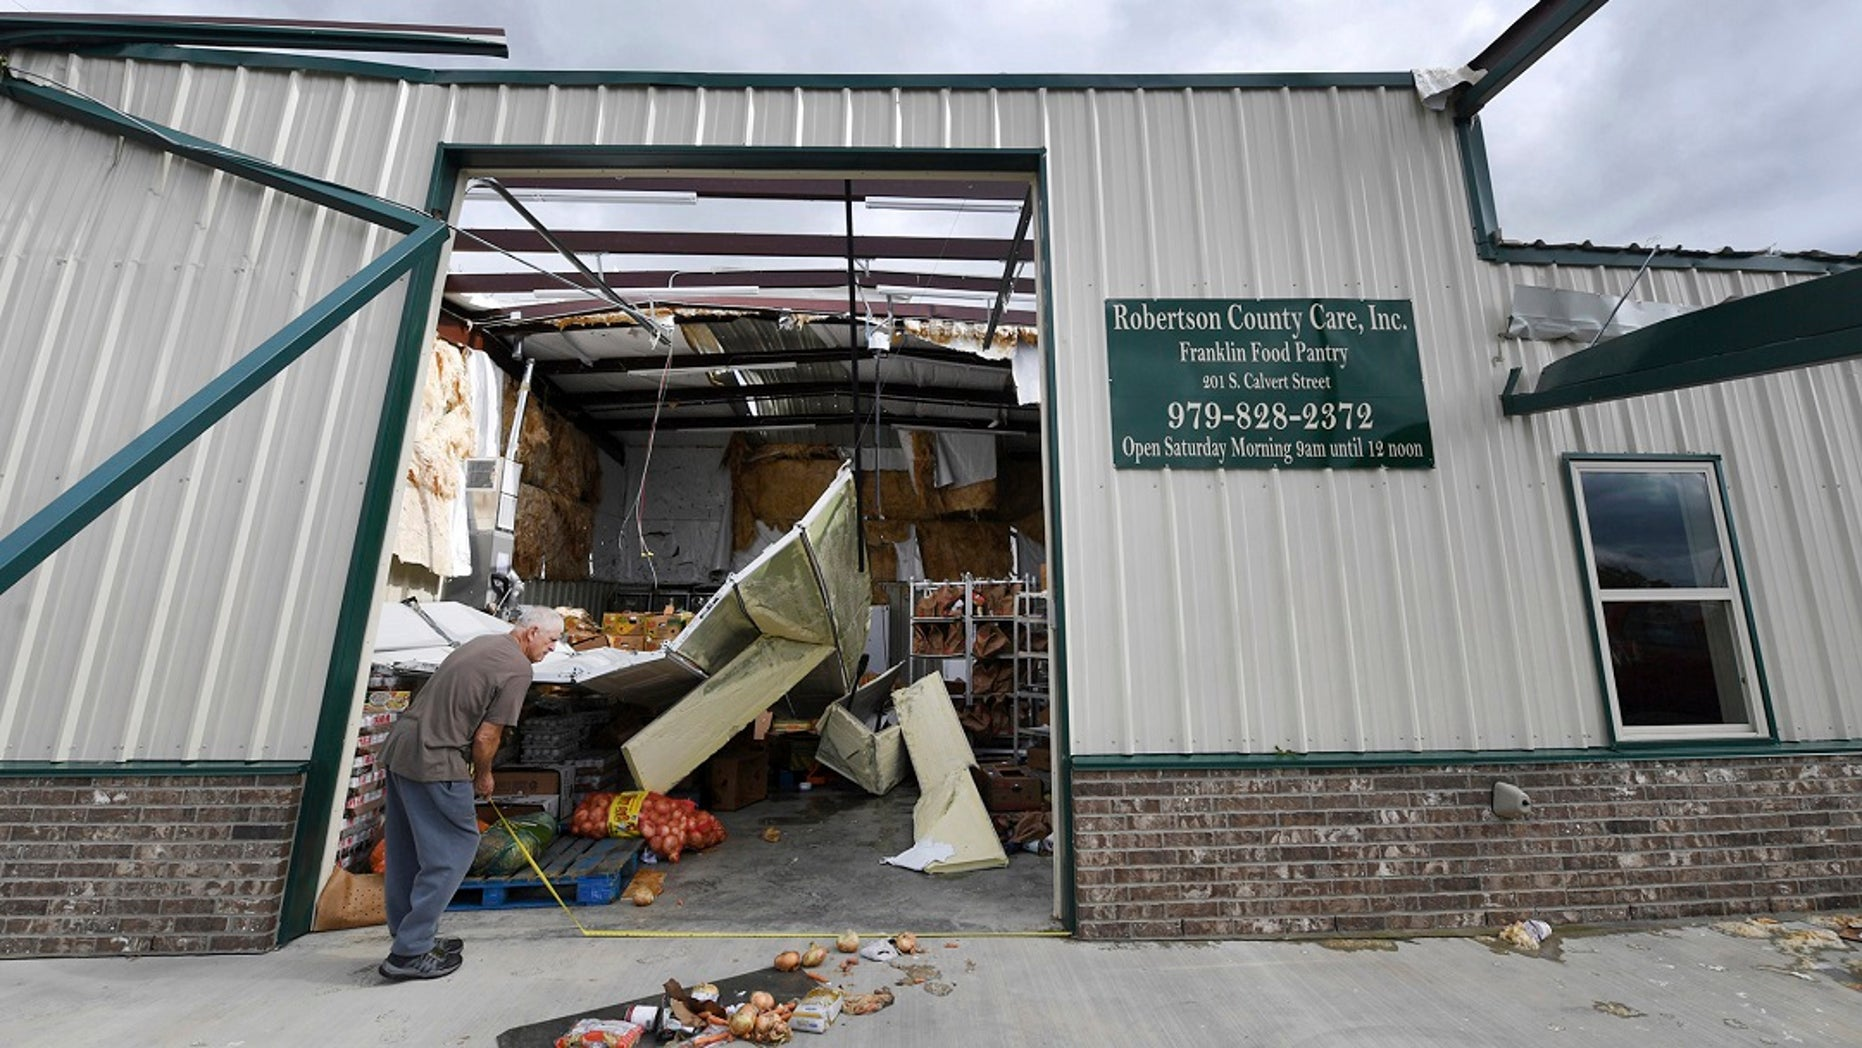 Jerry Redden takes a step outside of Robertson County Care, Inc., after the pantry was hit by a violent storm on Saturday in Franklin, Texas. (Associated Press)